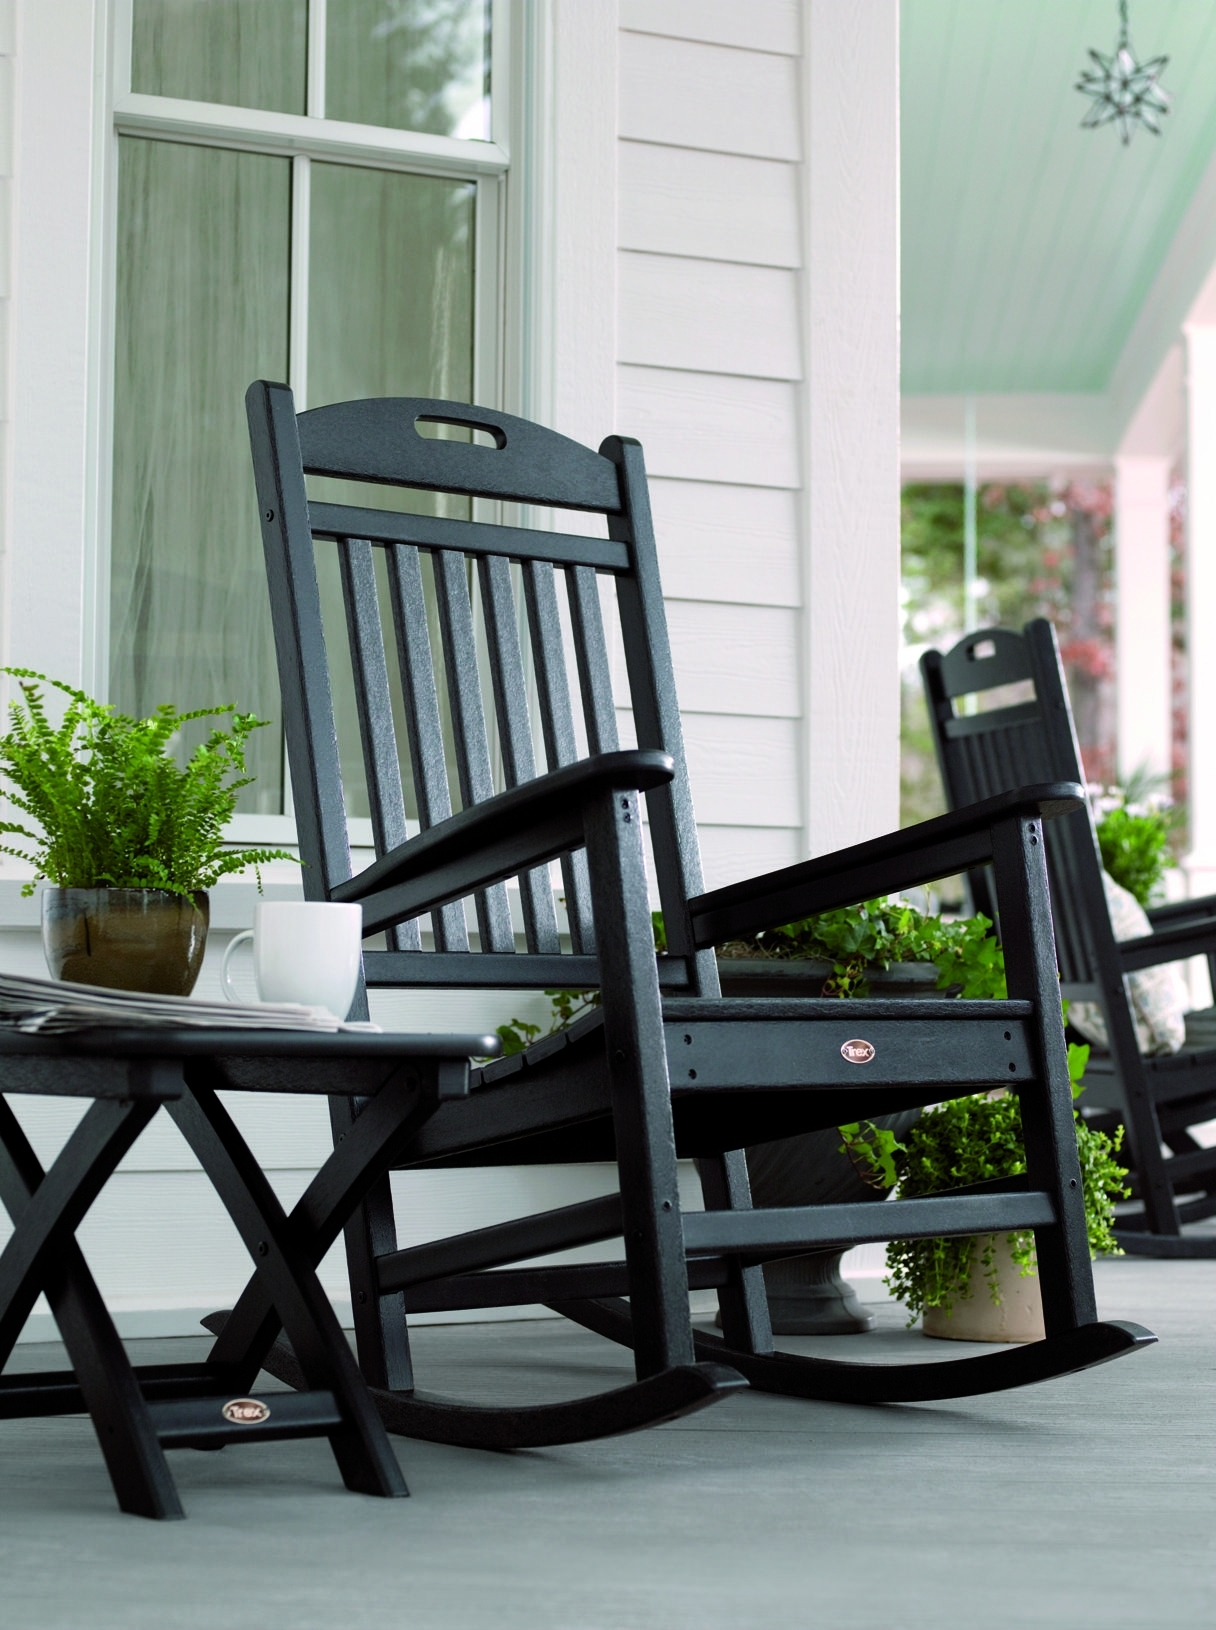 Inspiration about Patio Furniture Rocking Chair | Rocking Chairs | Outdoor Rocking In Rocking Chairs For Front Porch (#10 of 15)